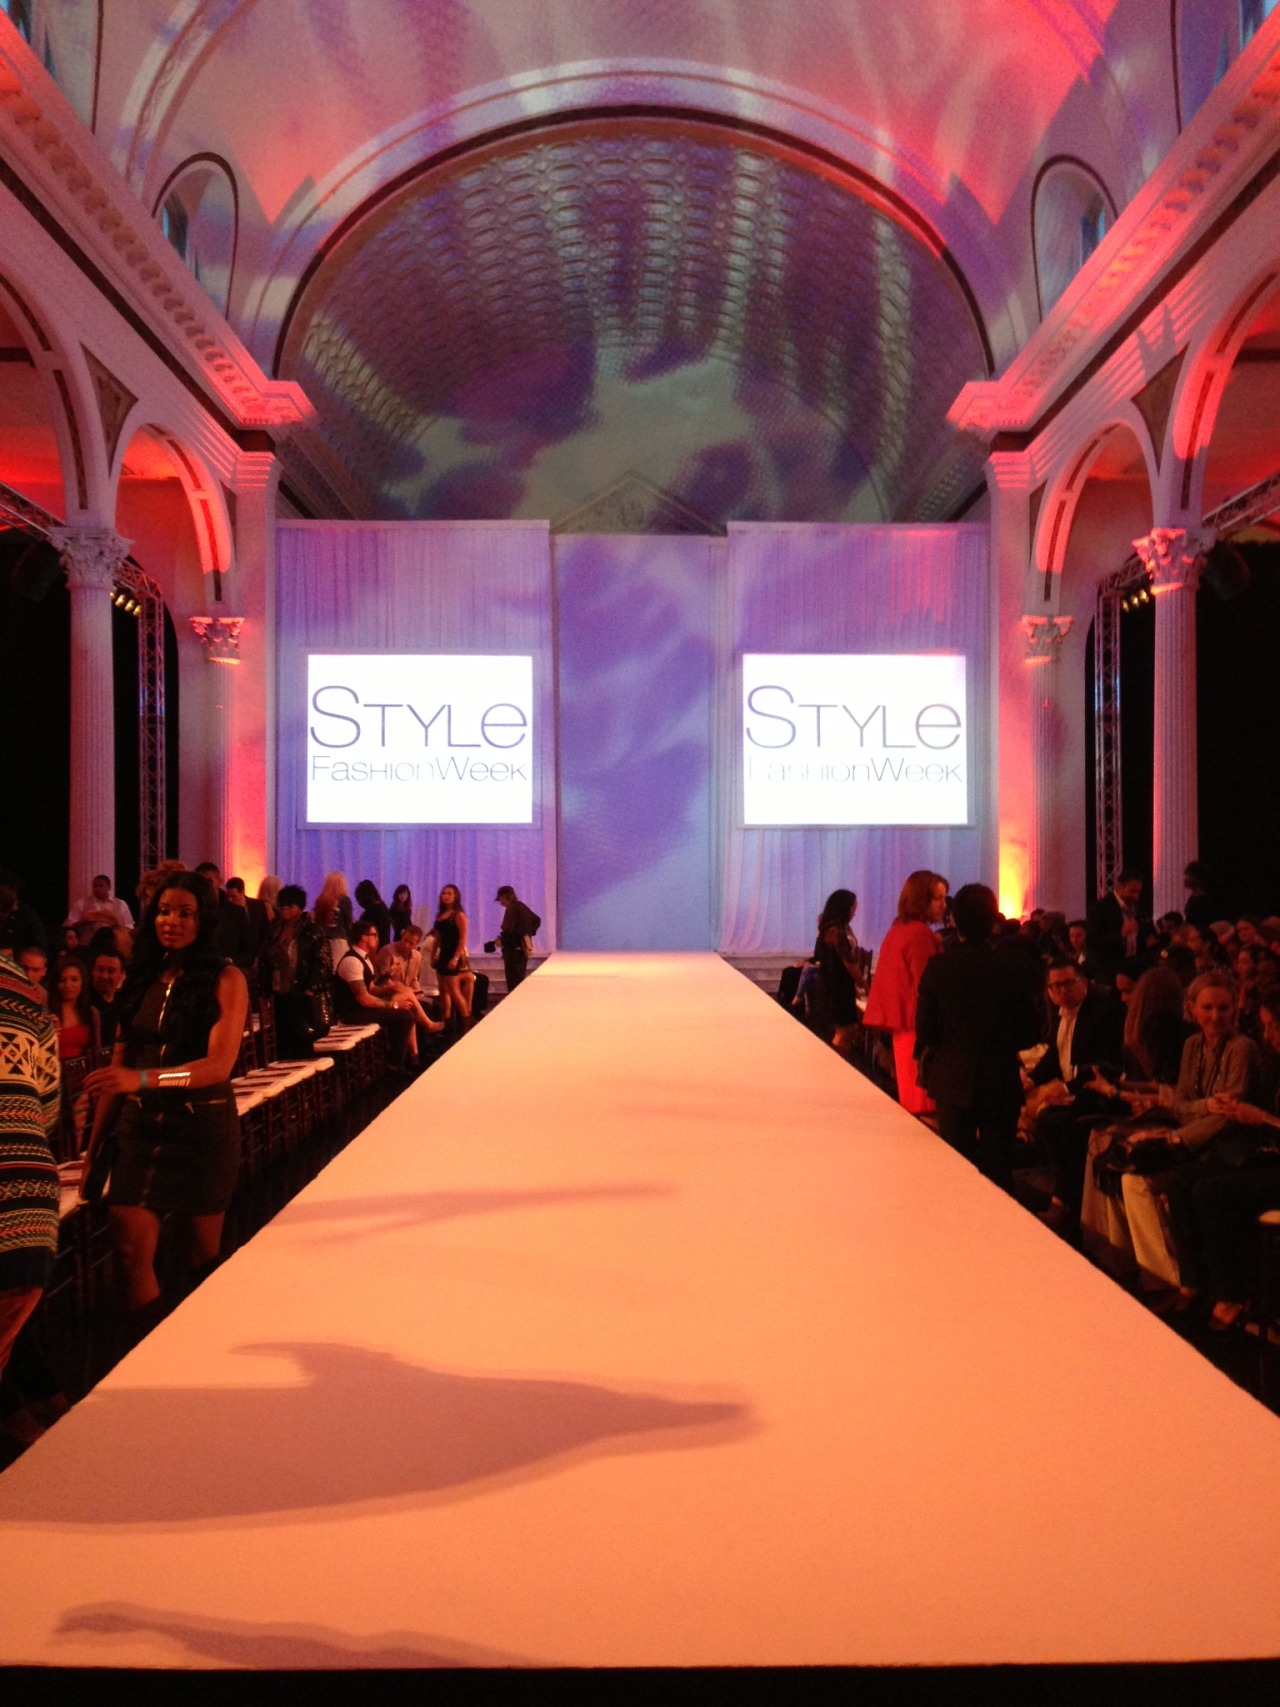 STYLE FASHION WEEK MADISONPARK / LINDEN